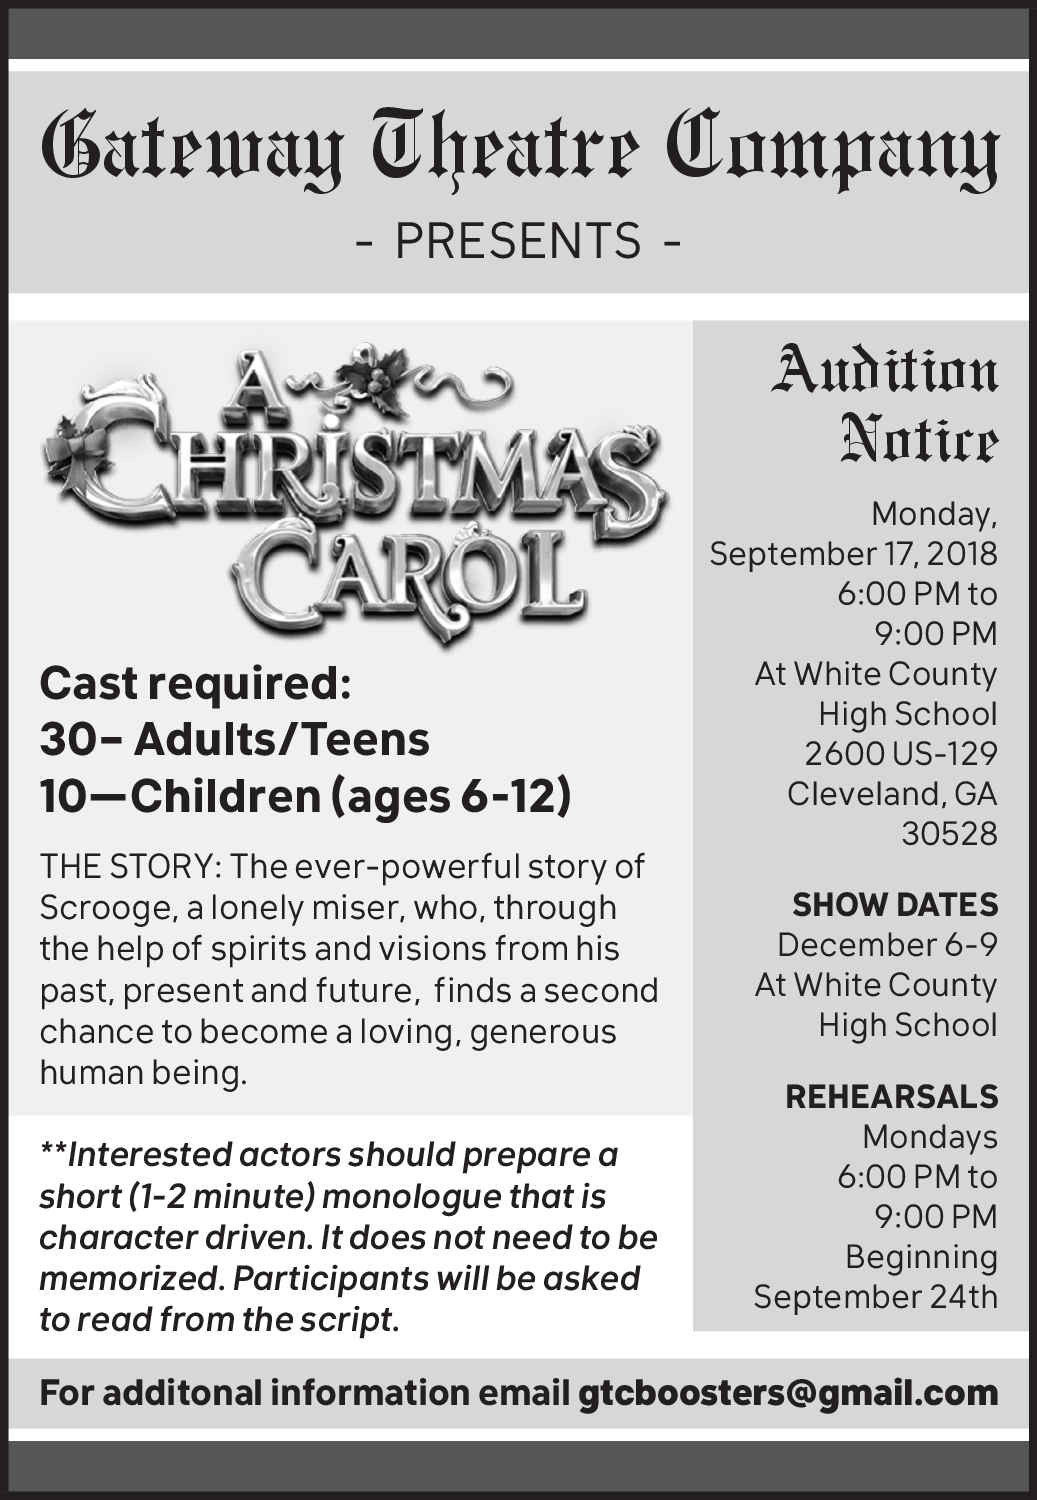 a christmas carol in cleveland ga movie theaters gateway theatre company - Christmas Carol Script